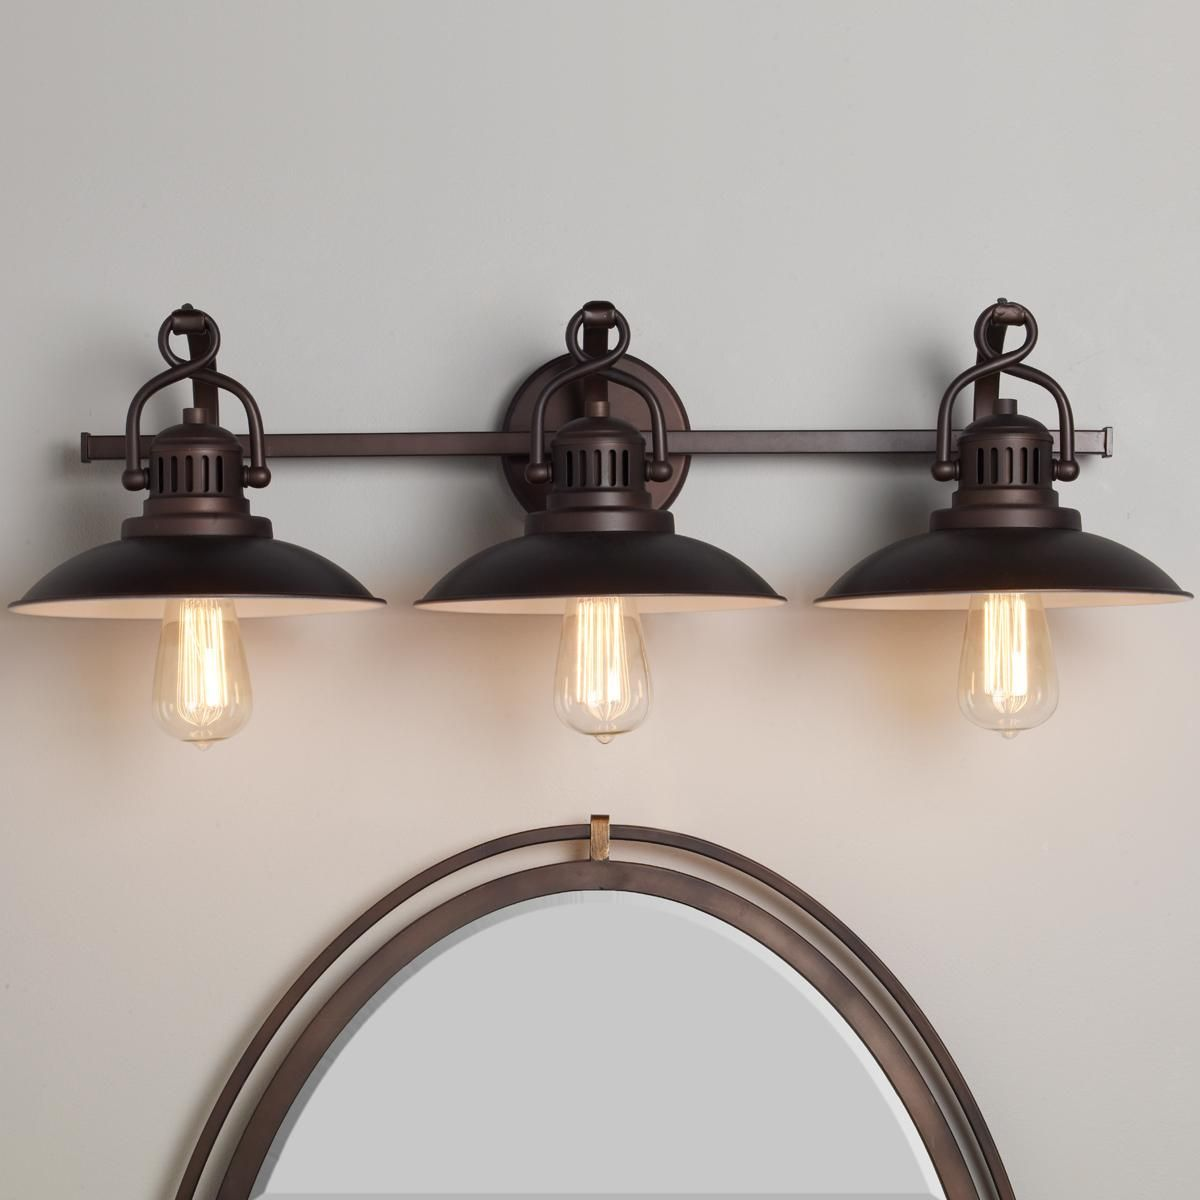 Station Lantern Bath Light 3 Light Farmhouse Light Fixtures Farmhouse Bathroom Light Vintage Bathroom Lighting